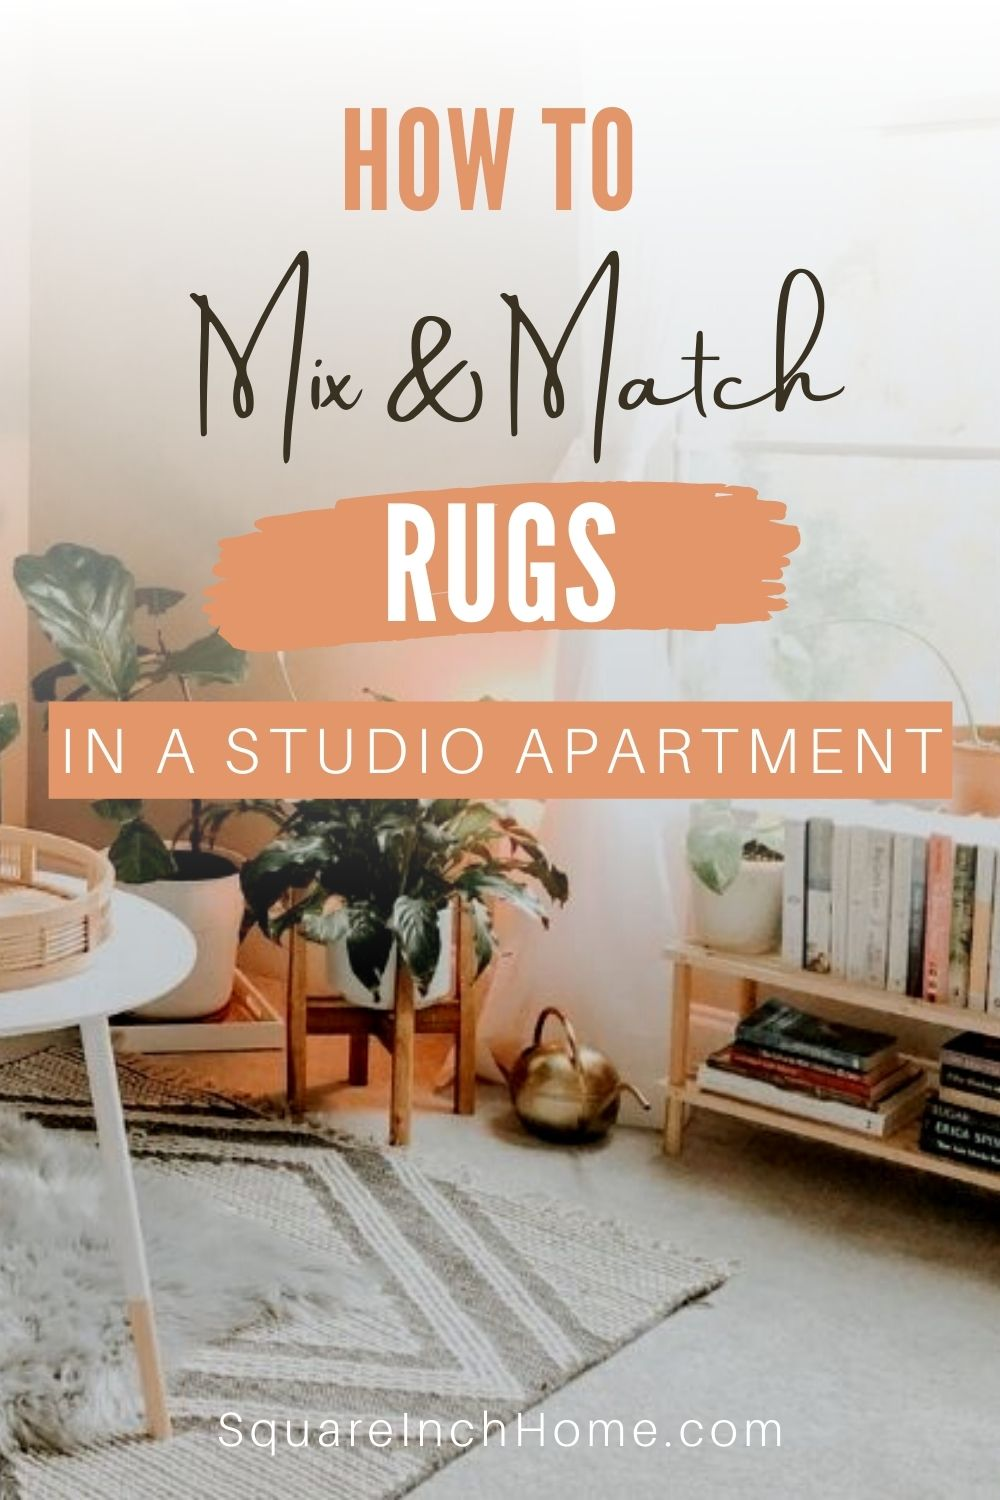 how to mix and match rugs in a small apartment